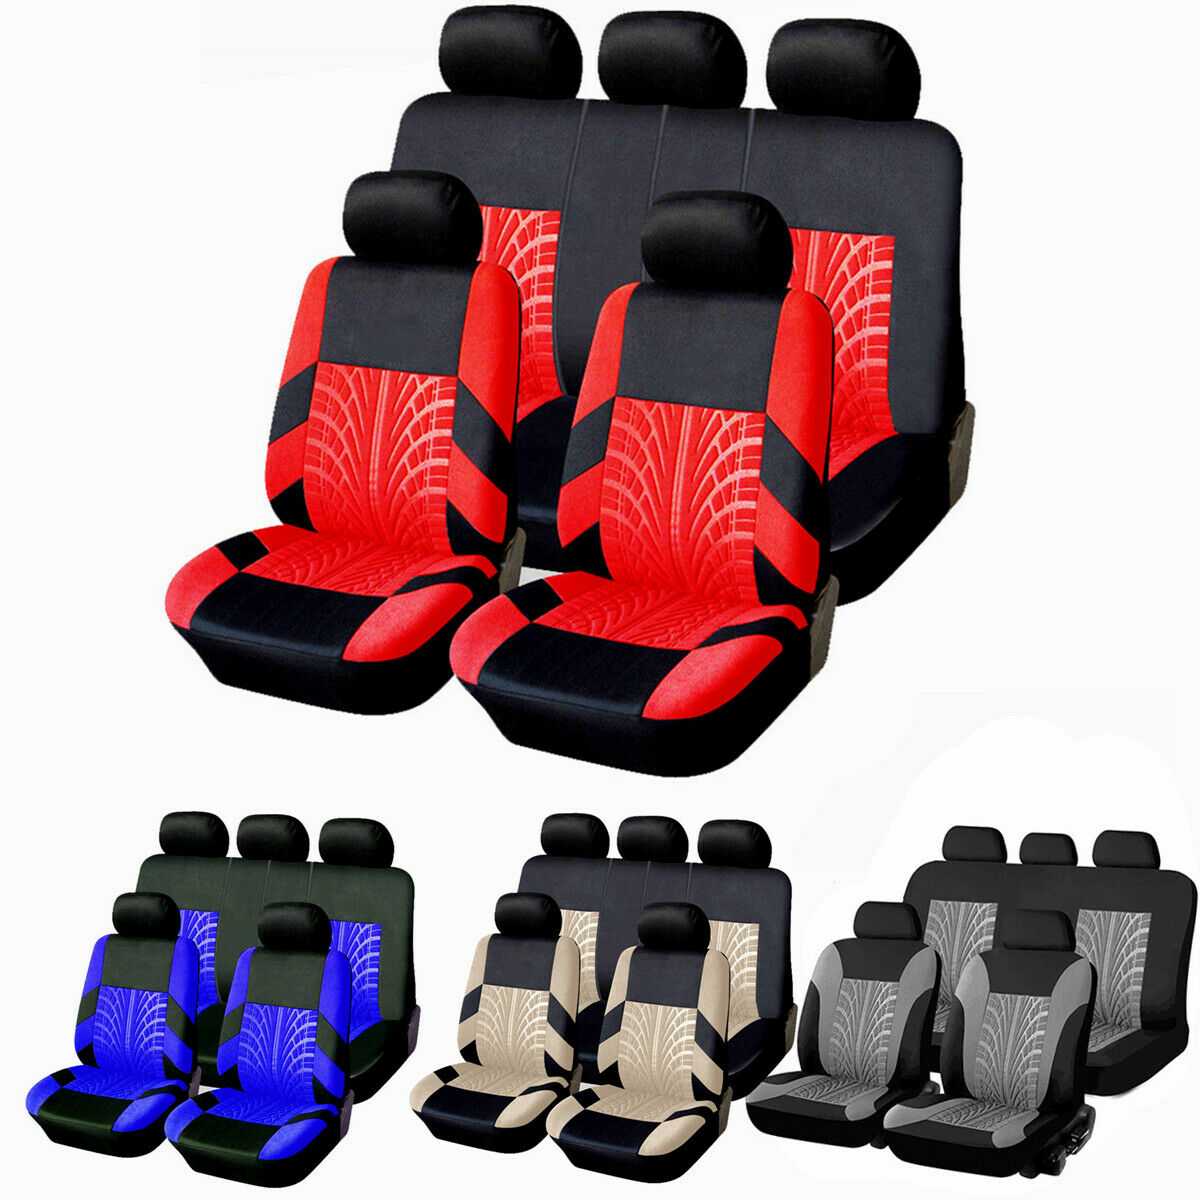 Universal Protectors Full Set Auto Seat Covers for Car Truck SUV Van 4 Colors